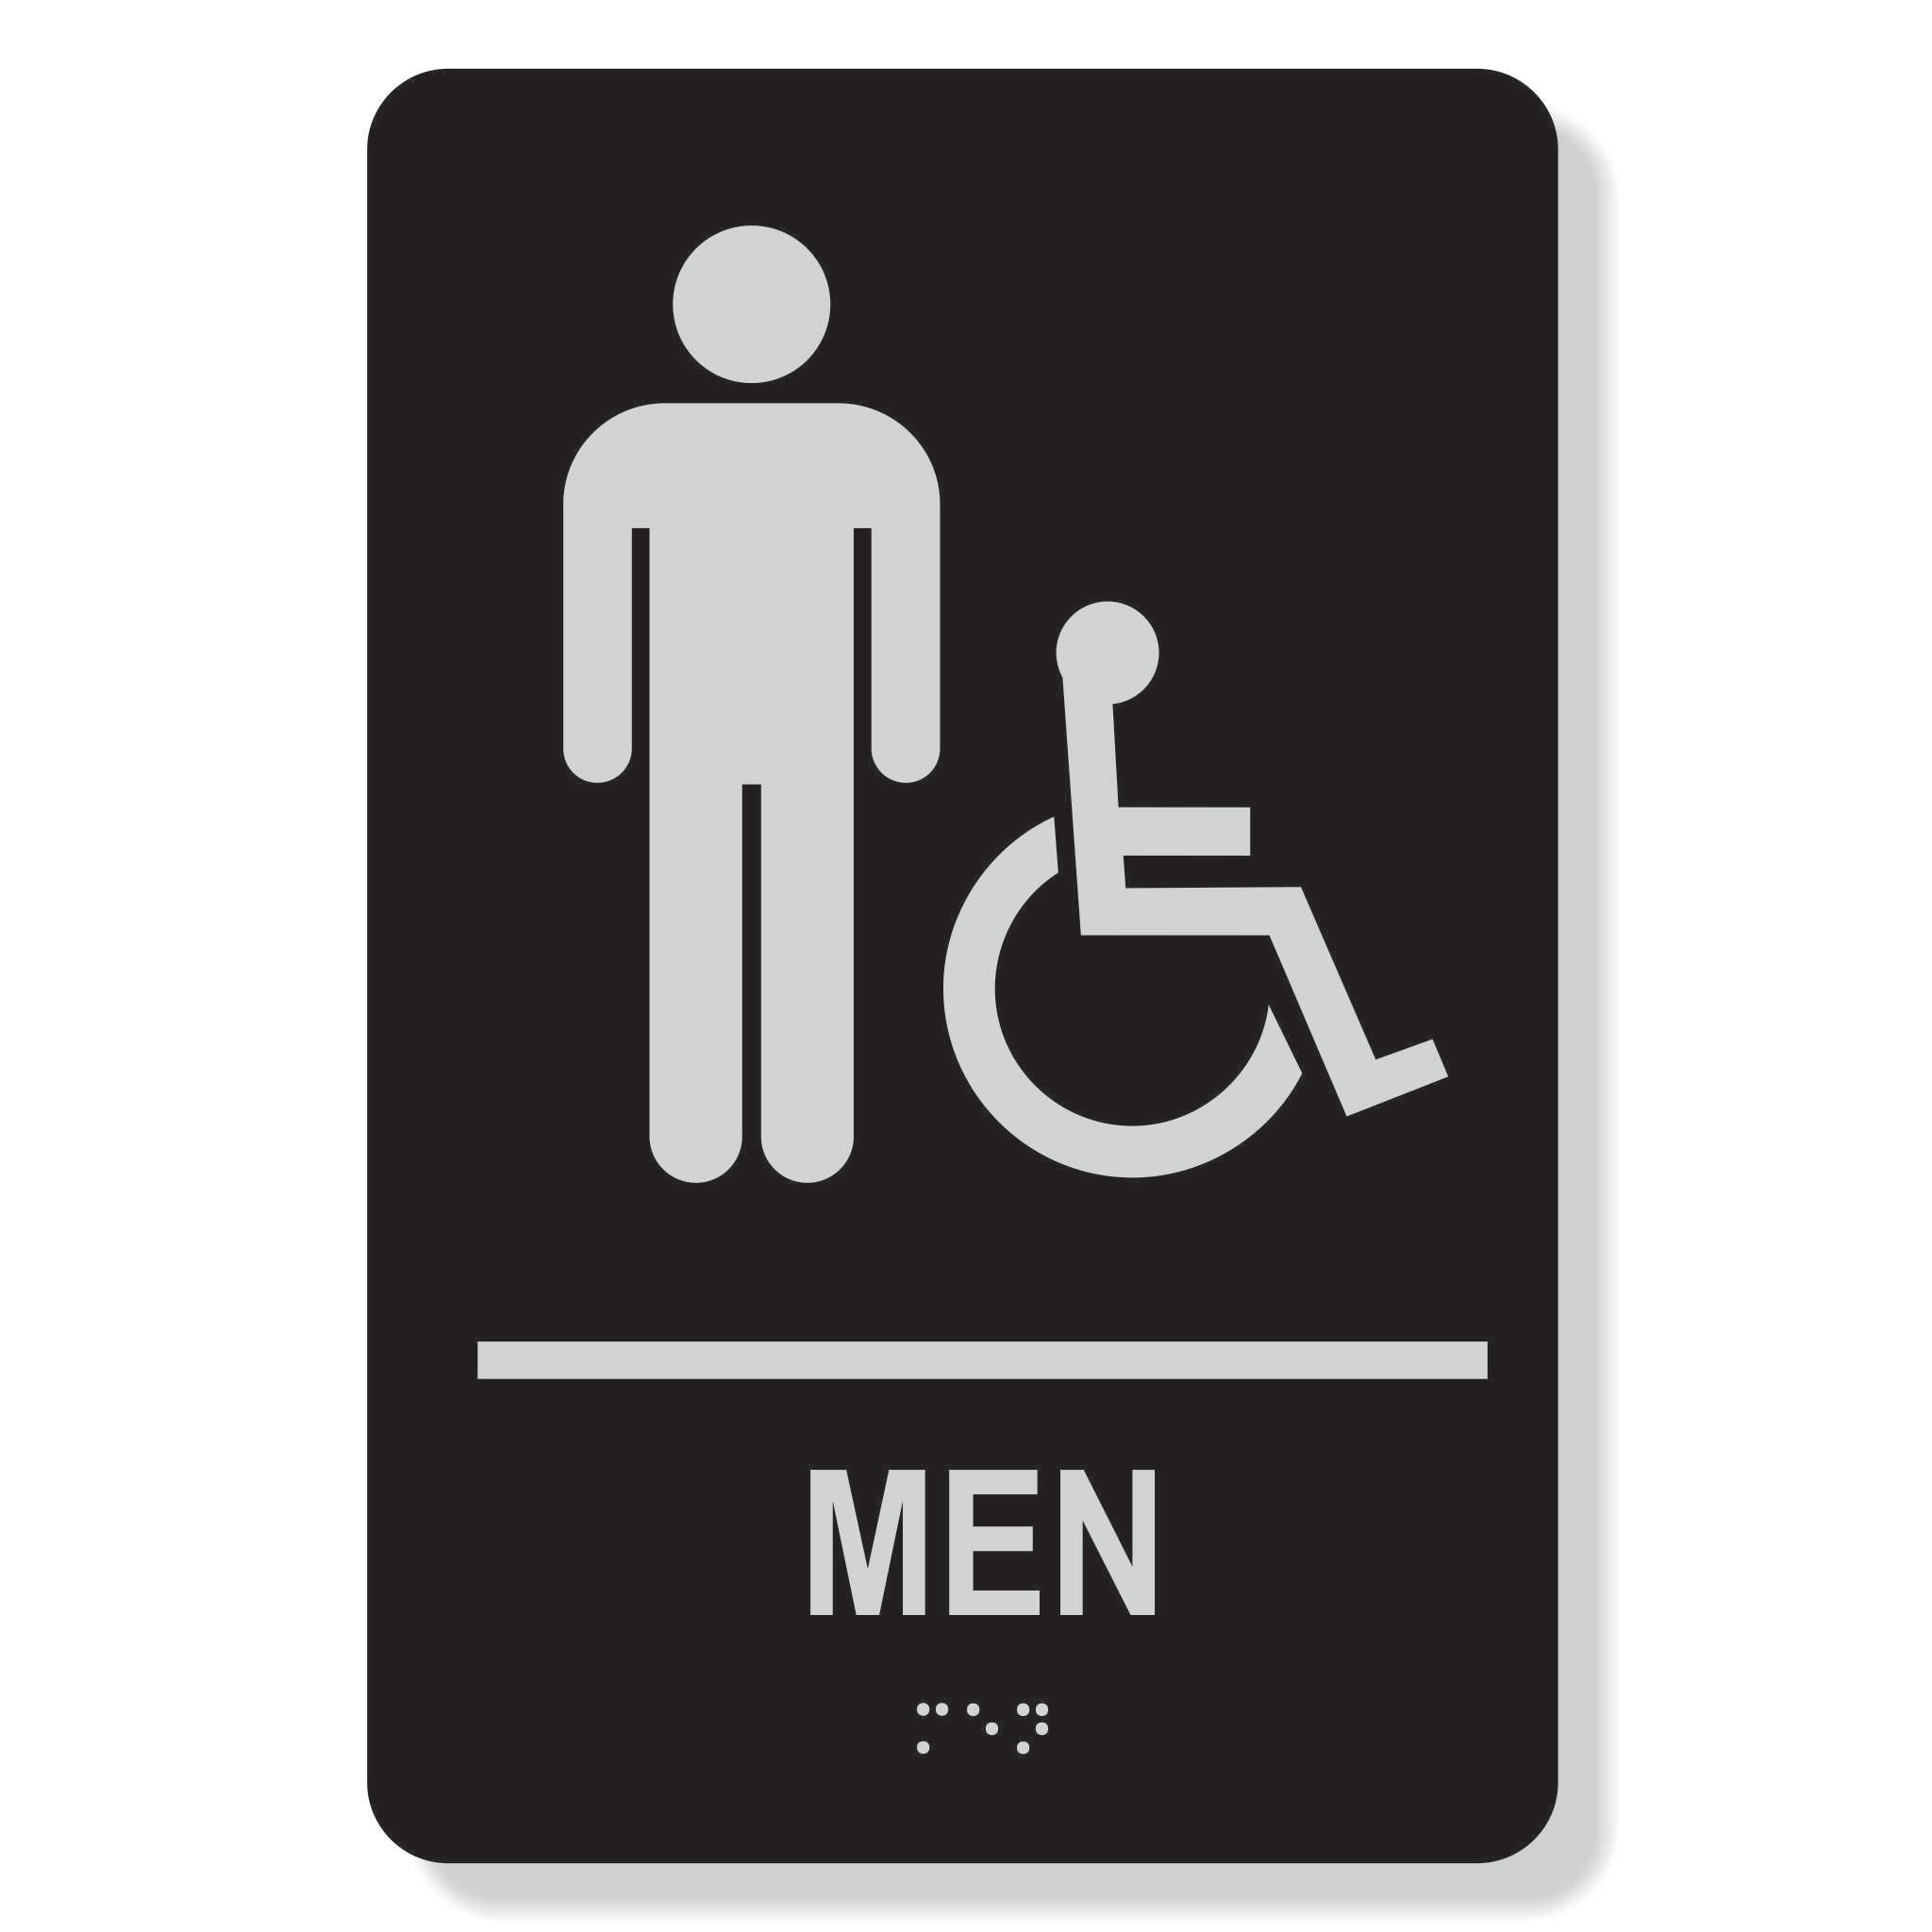 TJX- MENS accessible washroom sign